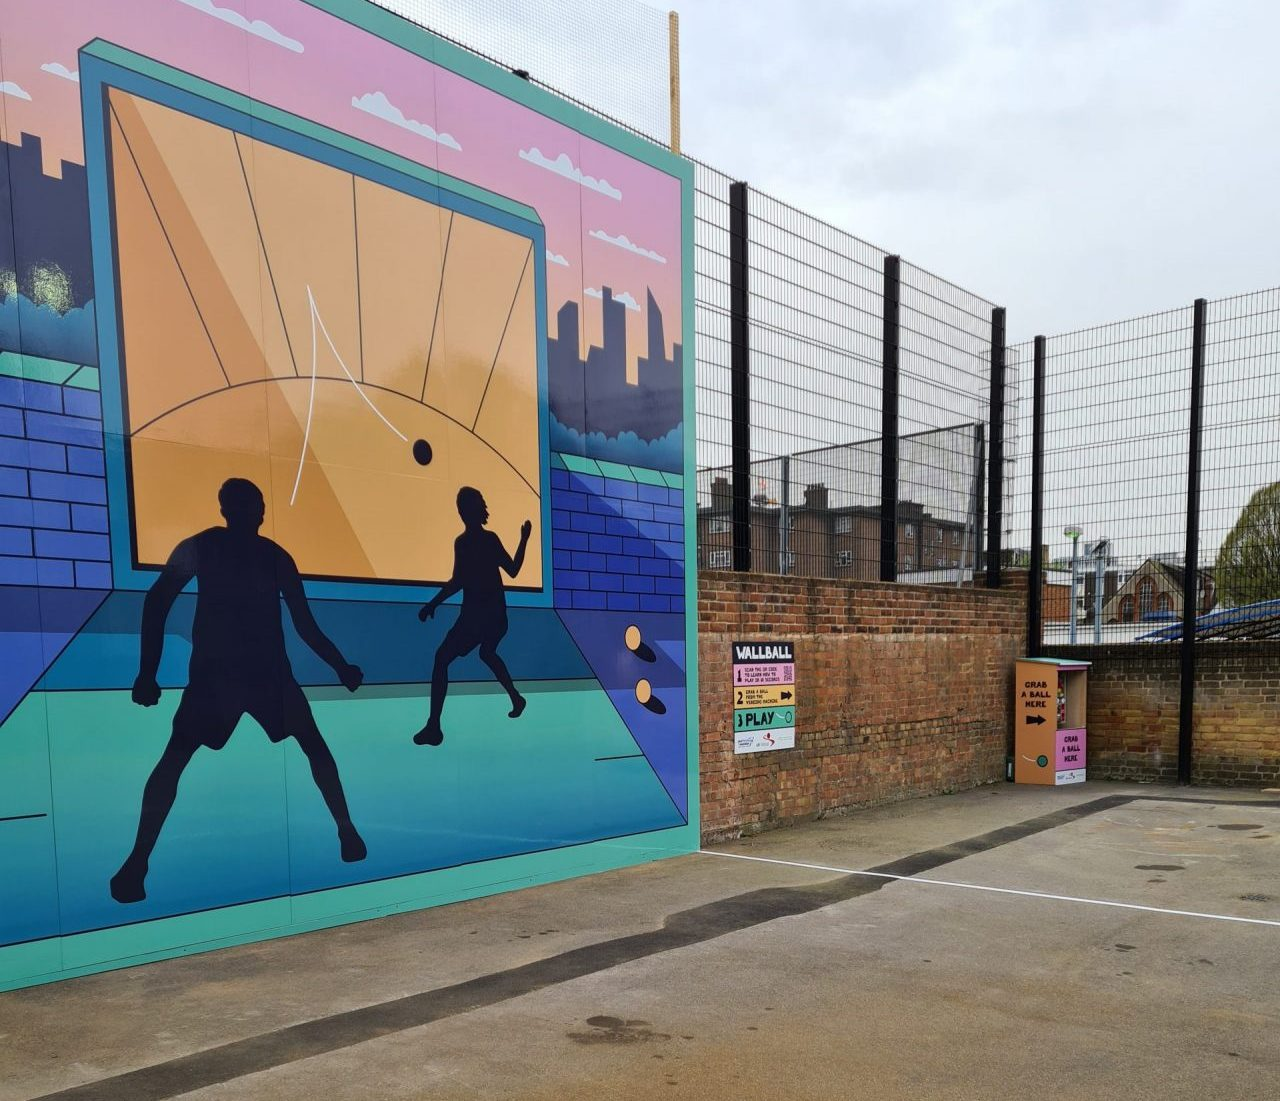 First ever UK community Wallball Court opening in London